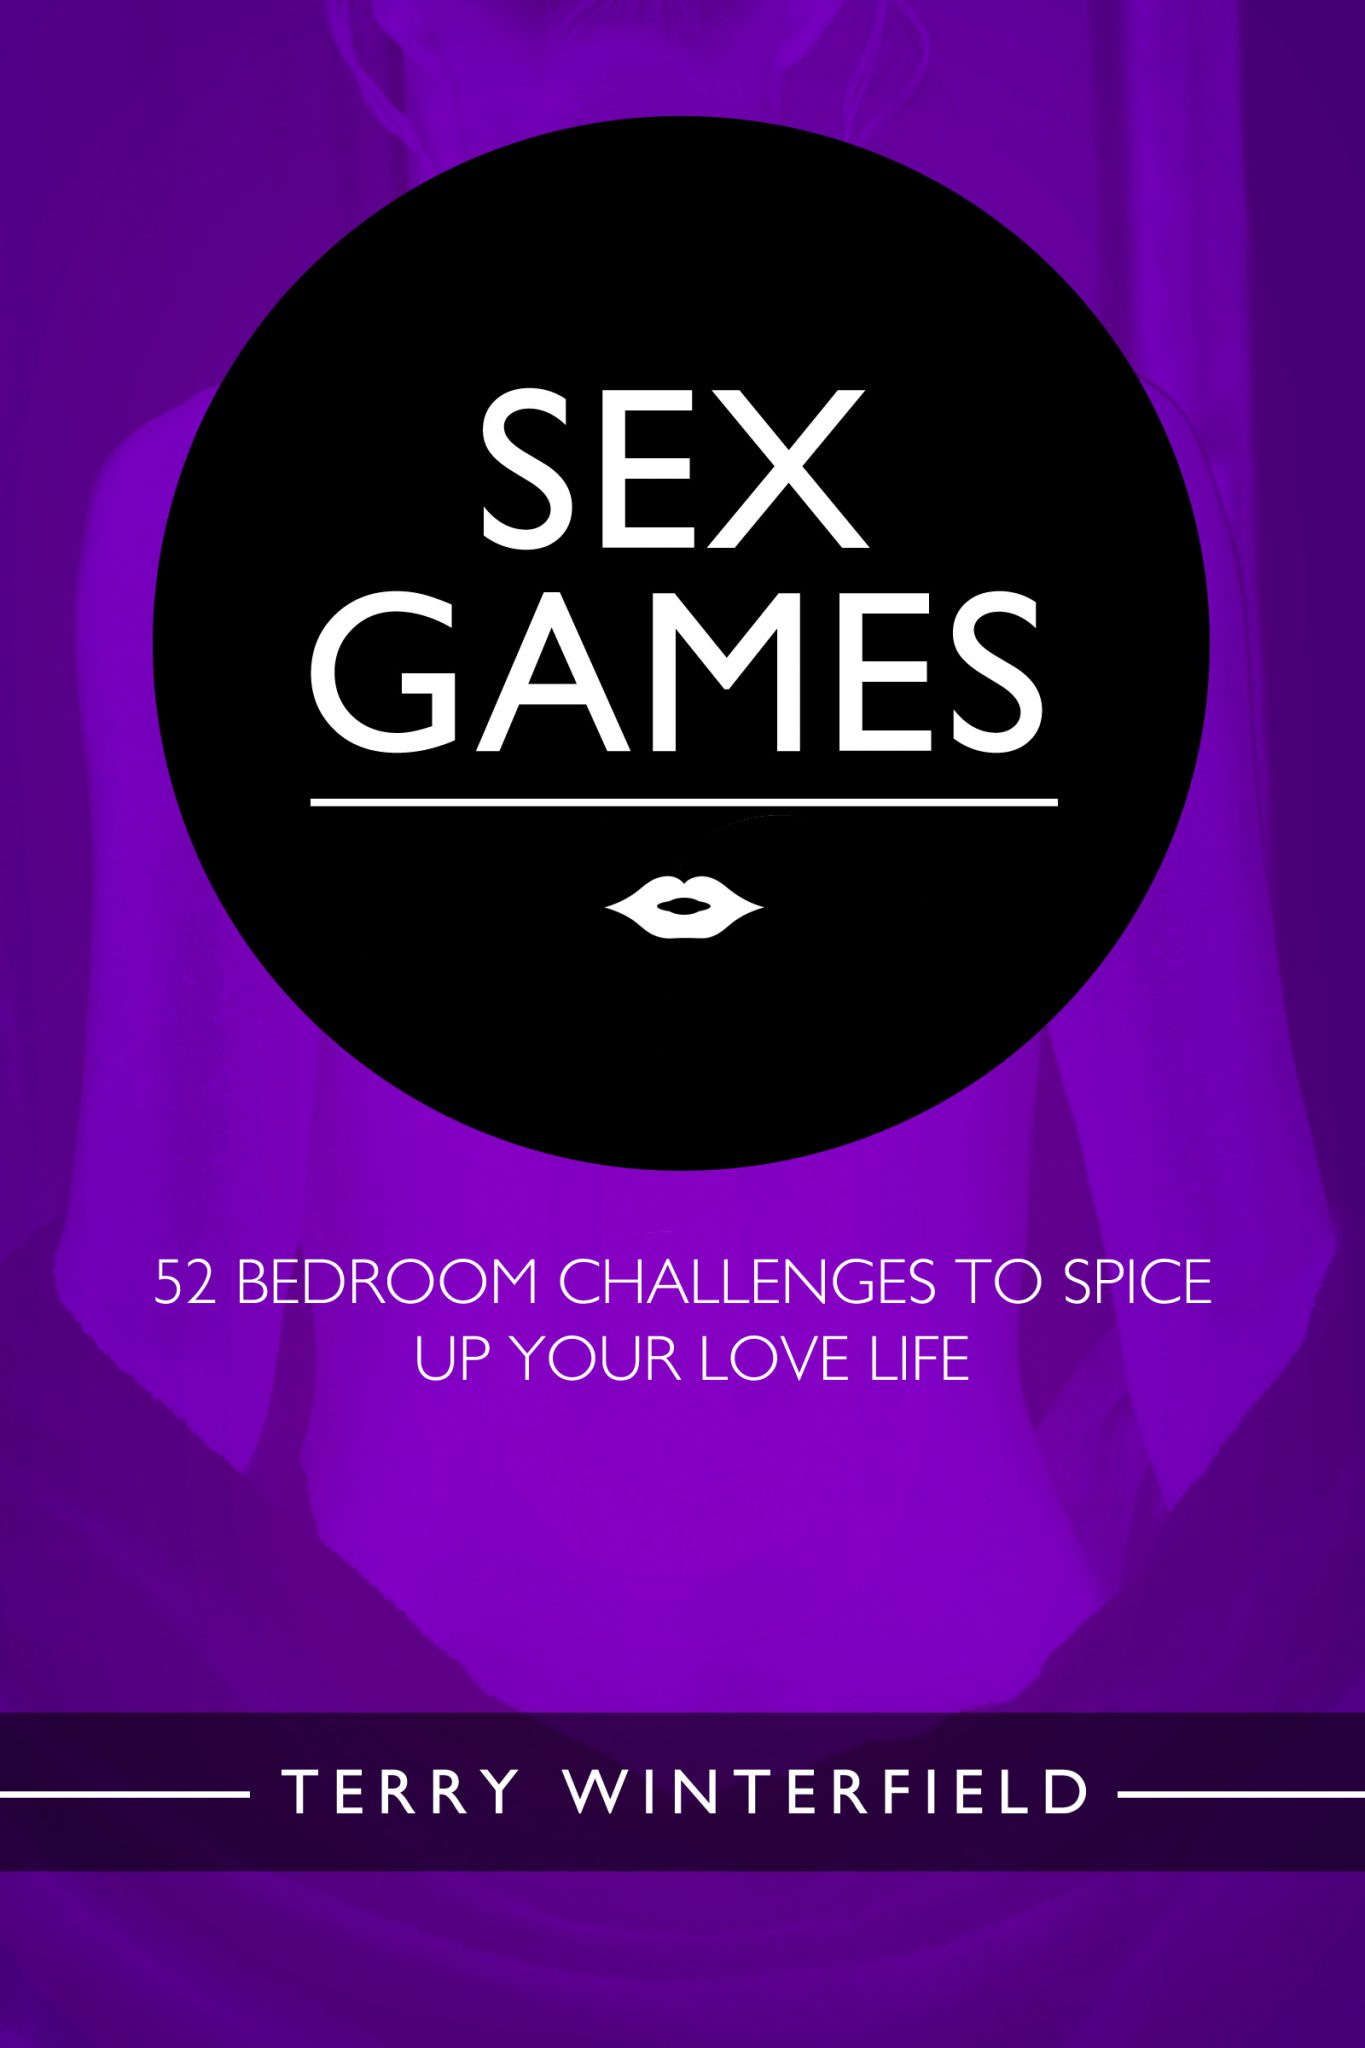 Sex Games: 52 Bedroom Challenges To Spice Up Your Love Life